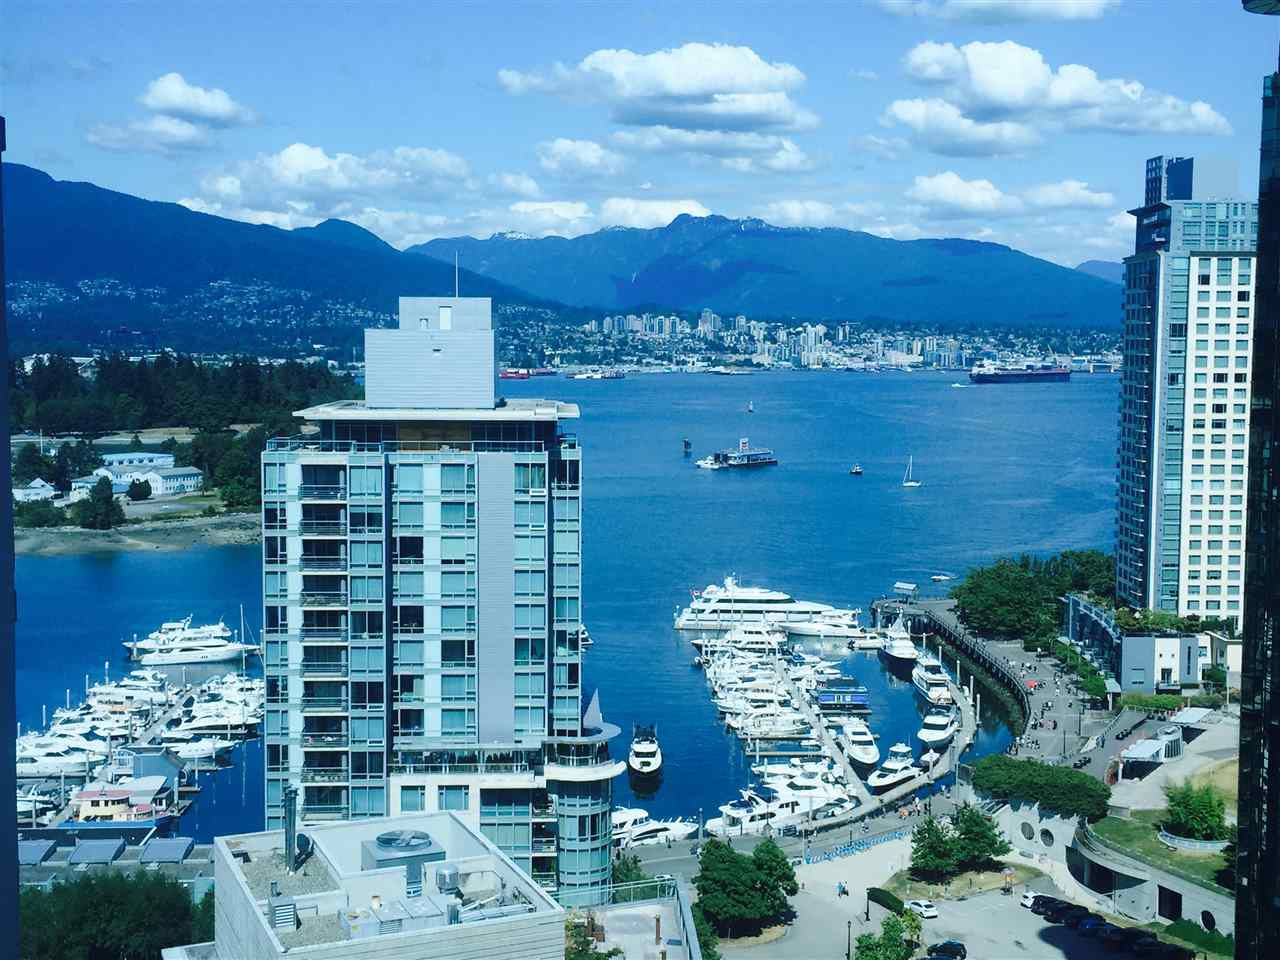 PRIME LOCATION!! Overlooking Coal Harbour, city night view & the marina. Facing North, East and South. Steps to Stanley Park, Coal Harbour and English Bay! In the heart of Downtown just minutes away to Vancouver's BEST SHOPPING and BEST Restaurants. Enjoy bright and open plan designer home featuring two bedrooms, two baths, new renovated and enclosed kitchen,  new appliances and laundry, new laminate floor. Featuring TWO Parkings, guest parking, pool, Jacuzzi and gym. HURRY! One of a kind corner suite with three balconys. Sorry No Pets.